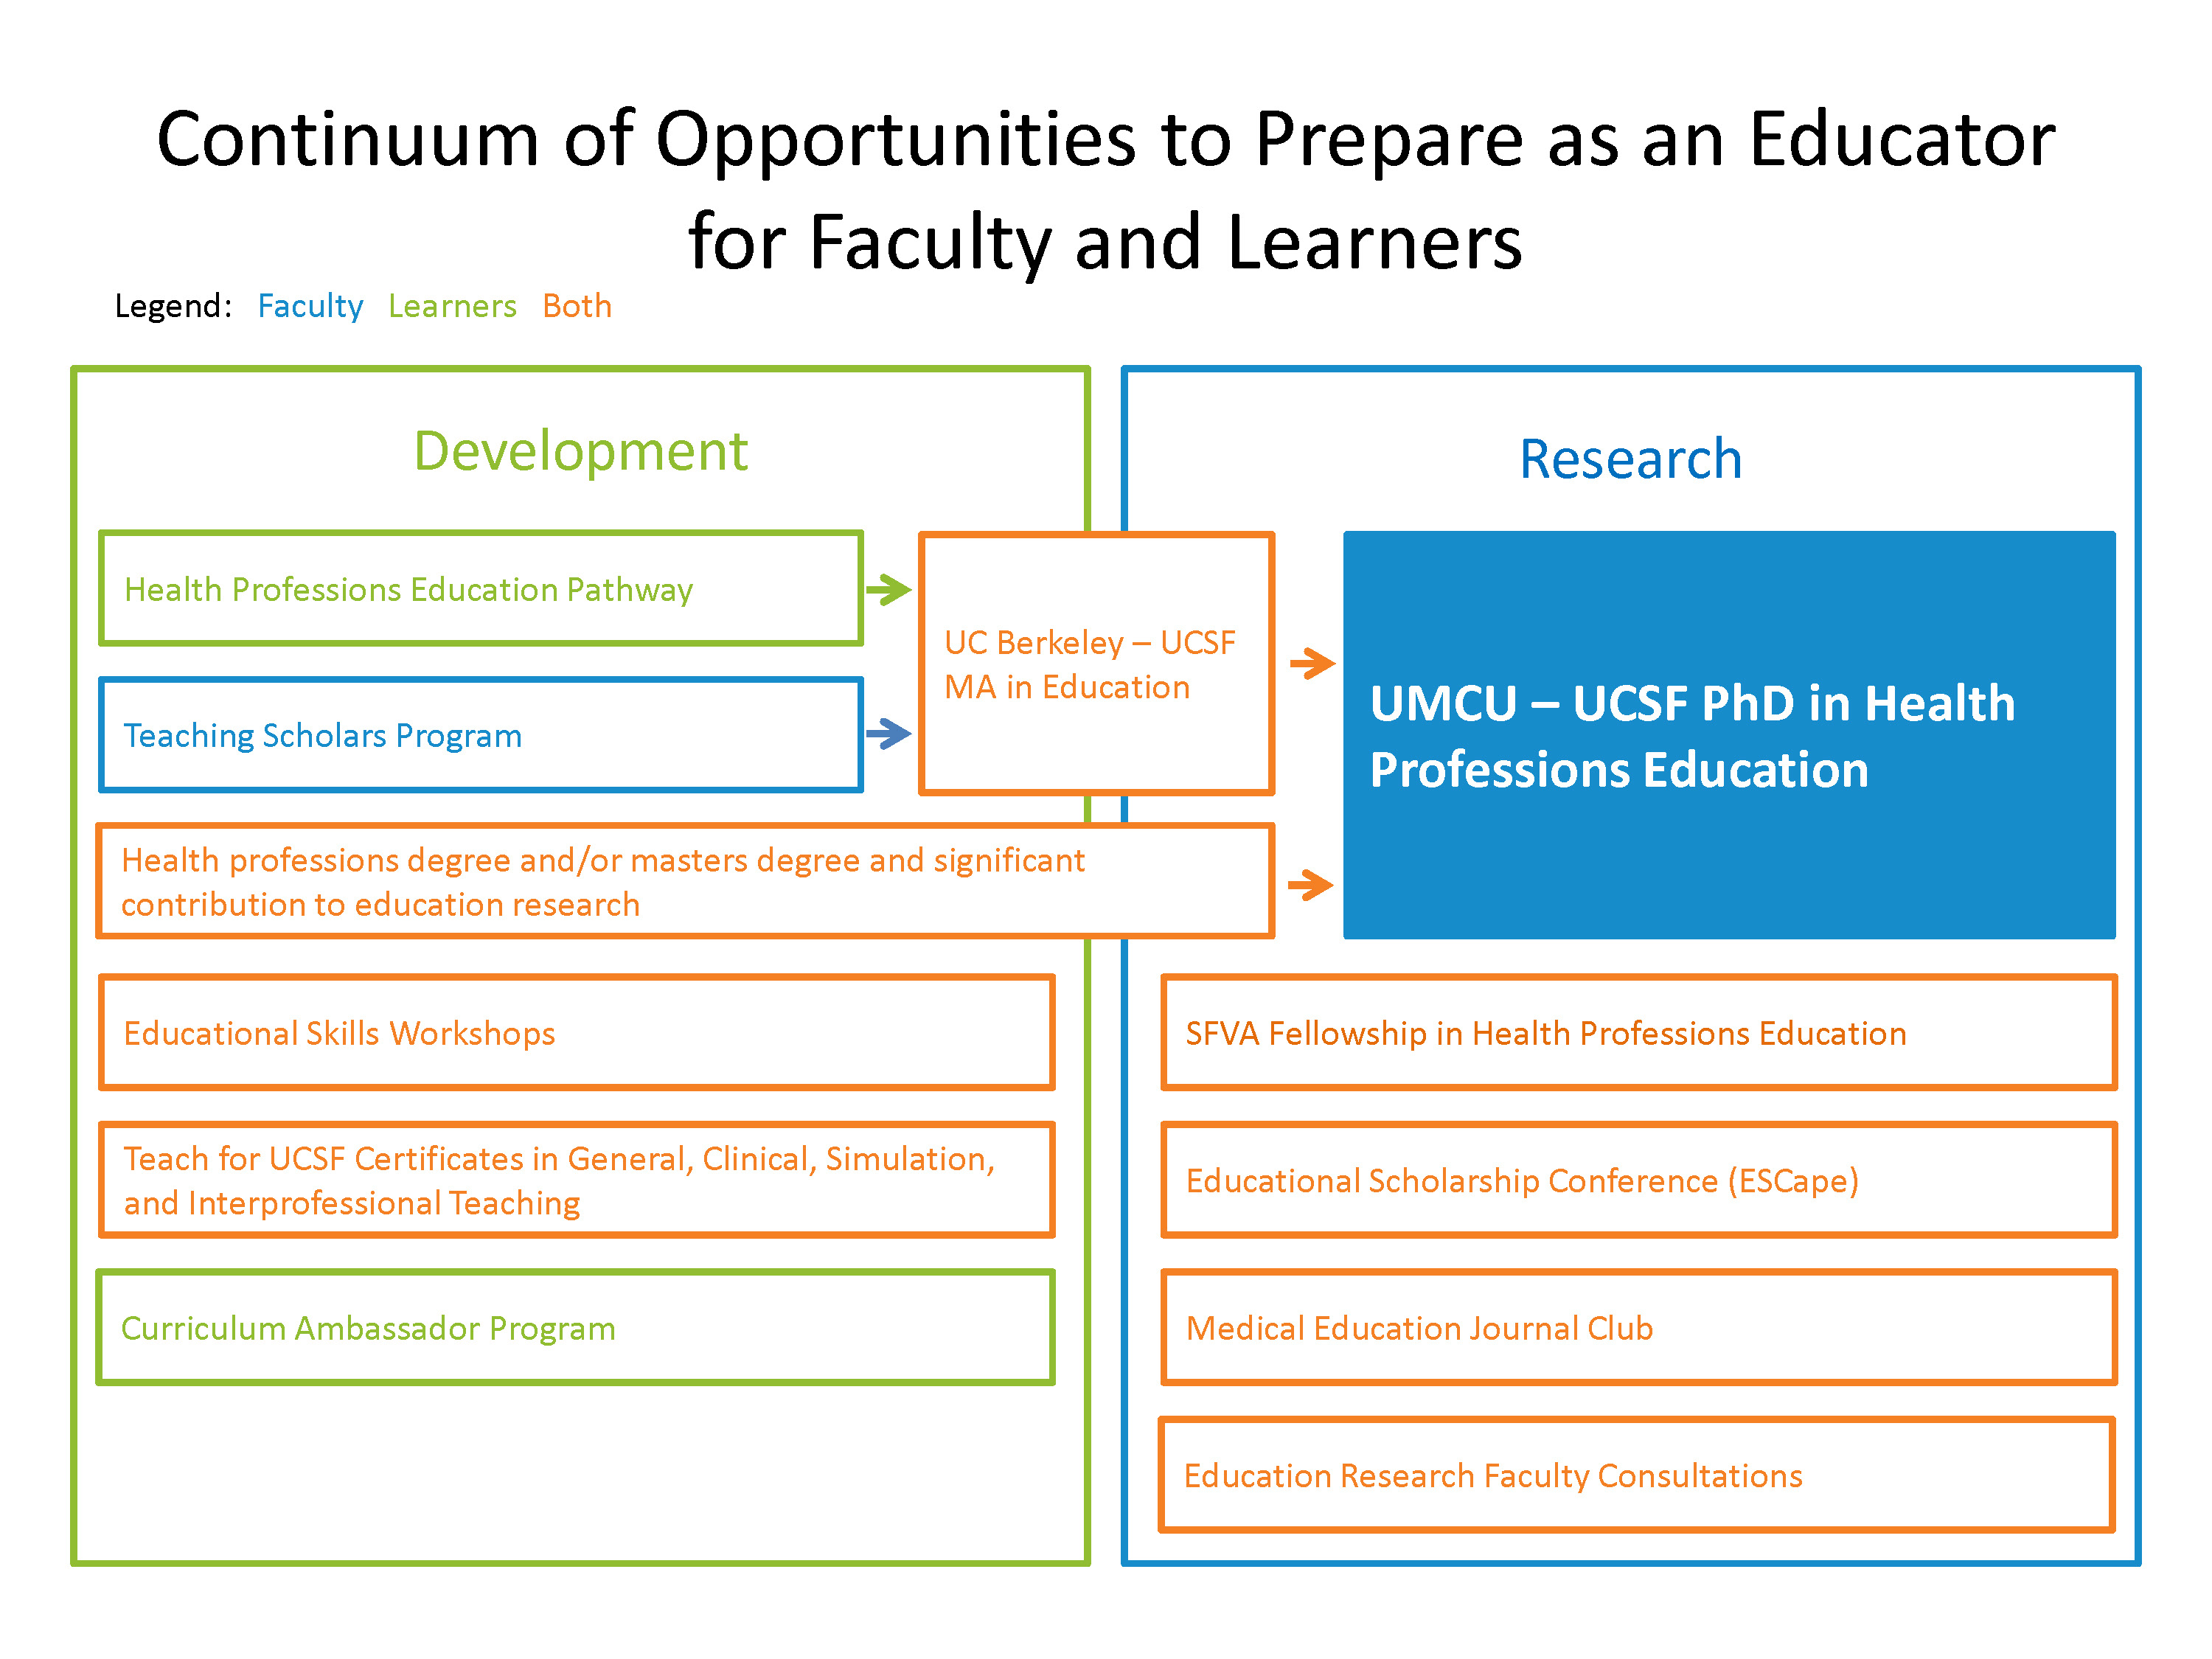 Image of continuum of training opportunities in education